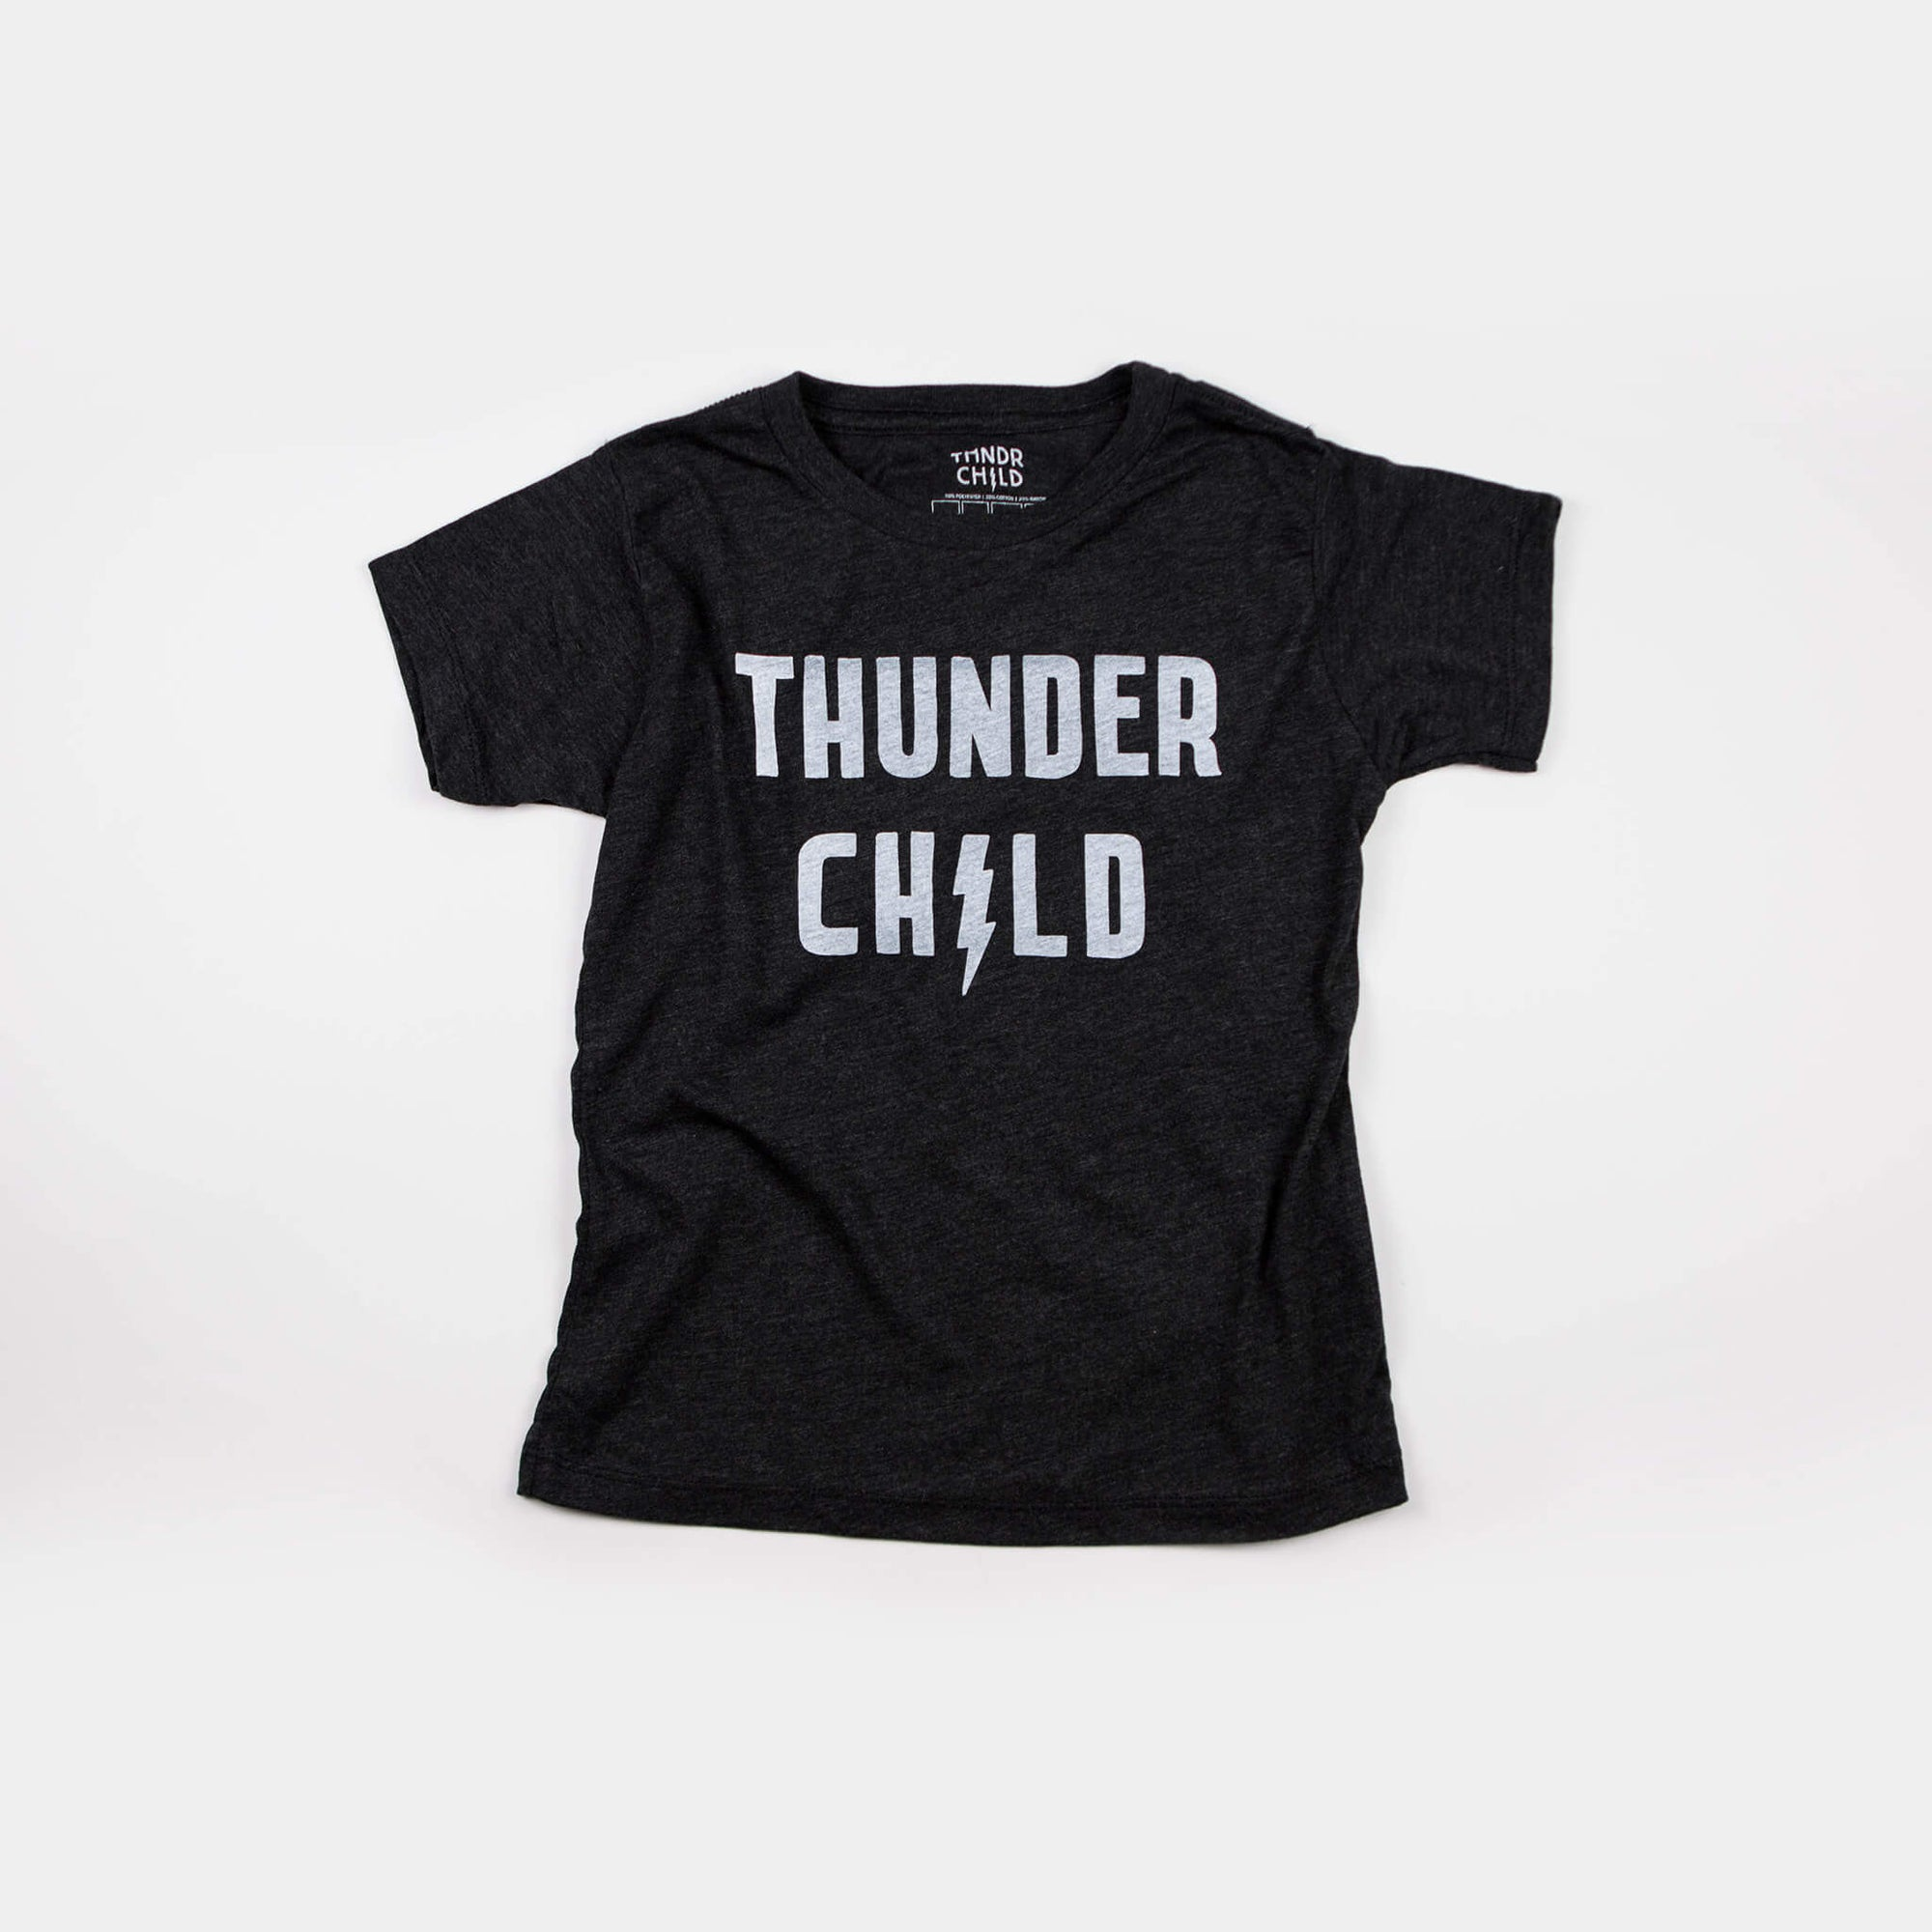 Thunder Child Tee - Toddler